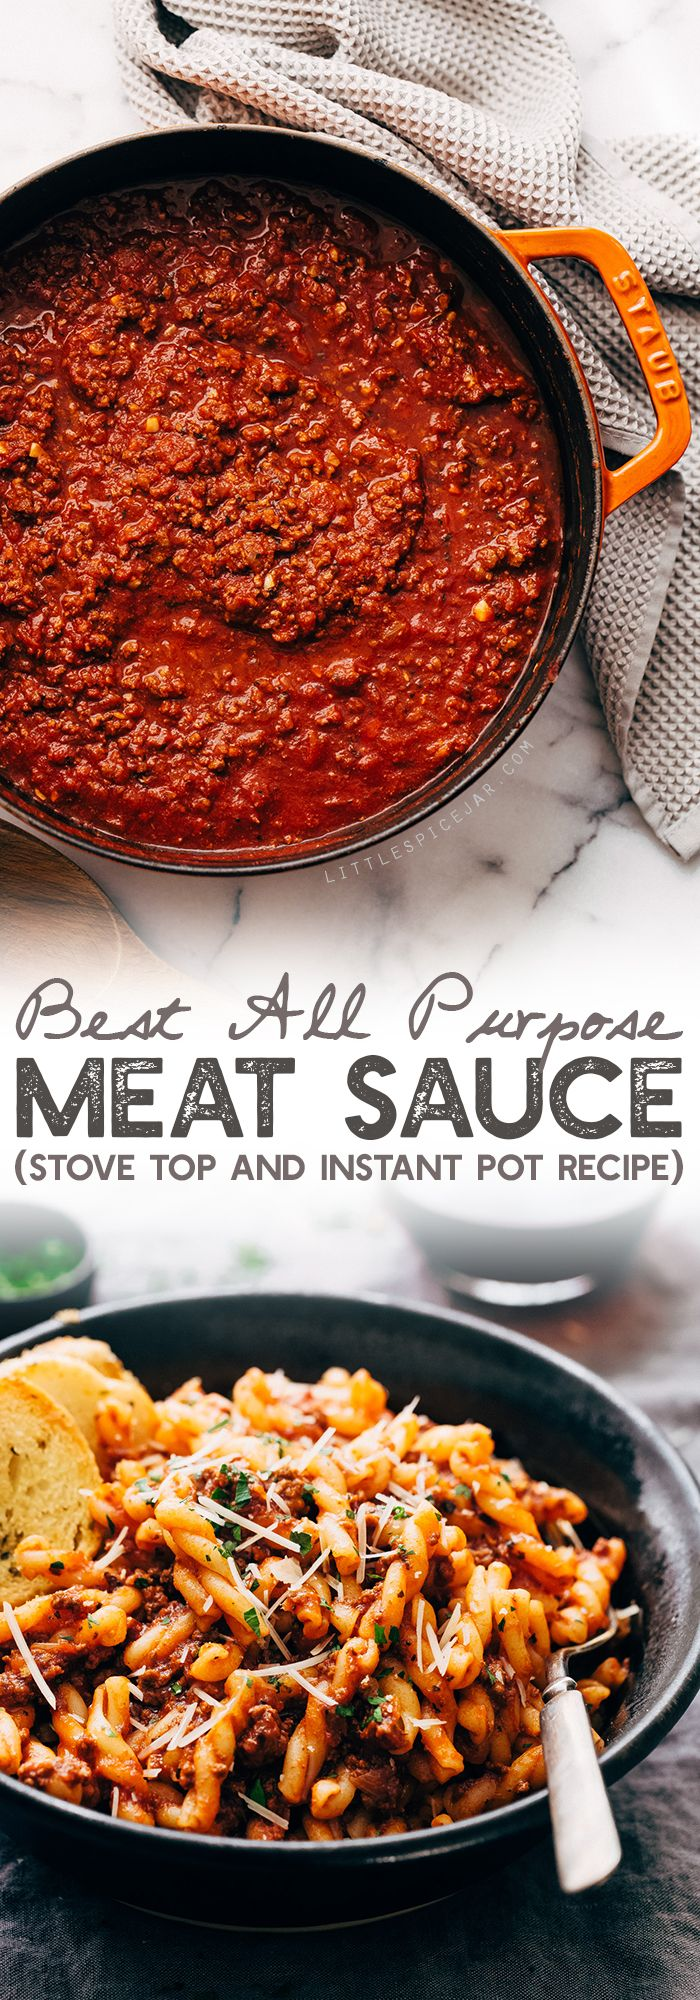 Easy Meat Sauce Recipe (Stove Top and Instant Pot) Learn how to make the most delicious homemade meat sauce. Use it in lasagna, stuffed shells, zucchini boats or on top of spaghetti! #spaghettsauce #bigbatchmeatsauce #meatsauce #ragu #bolognese   Littlespicejar.com